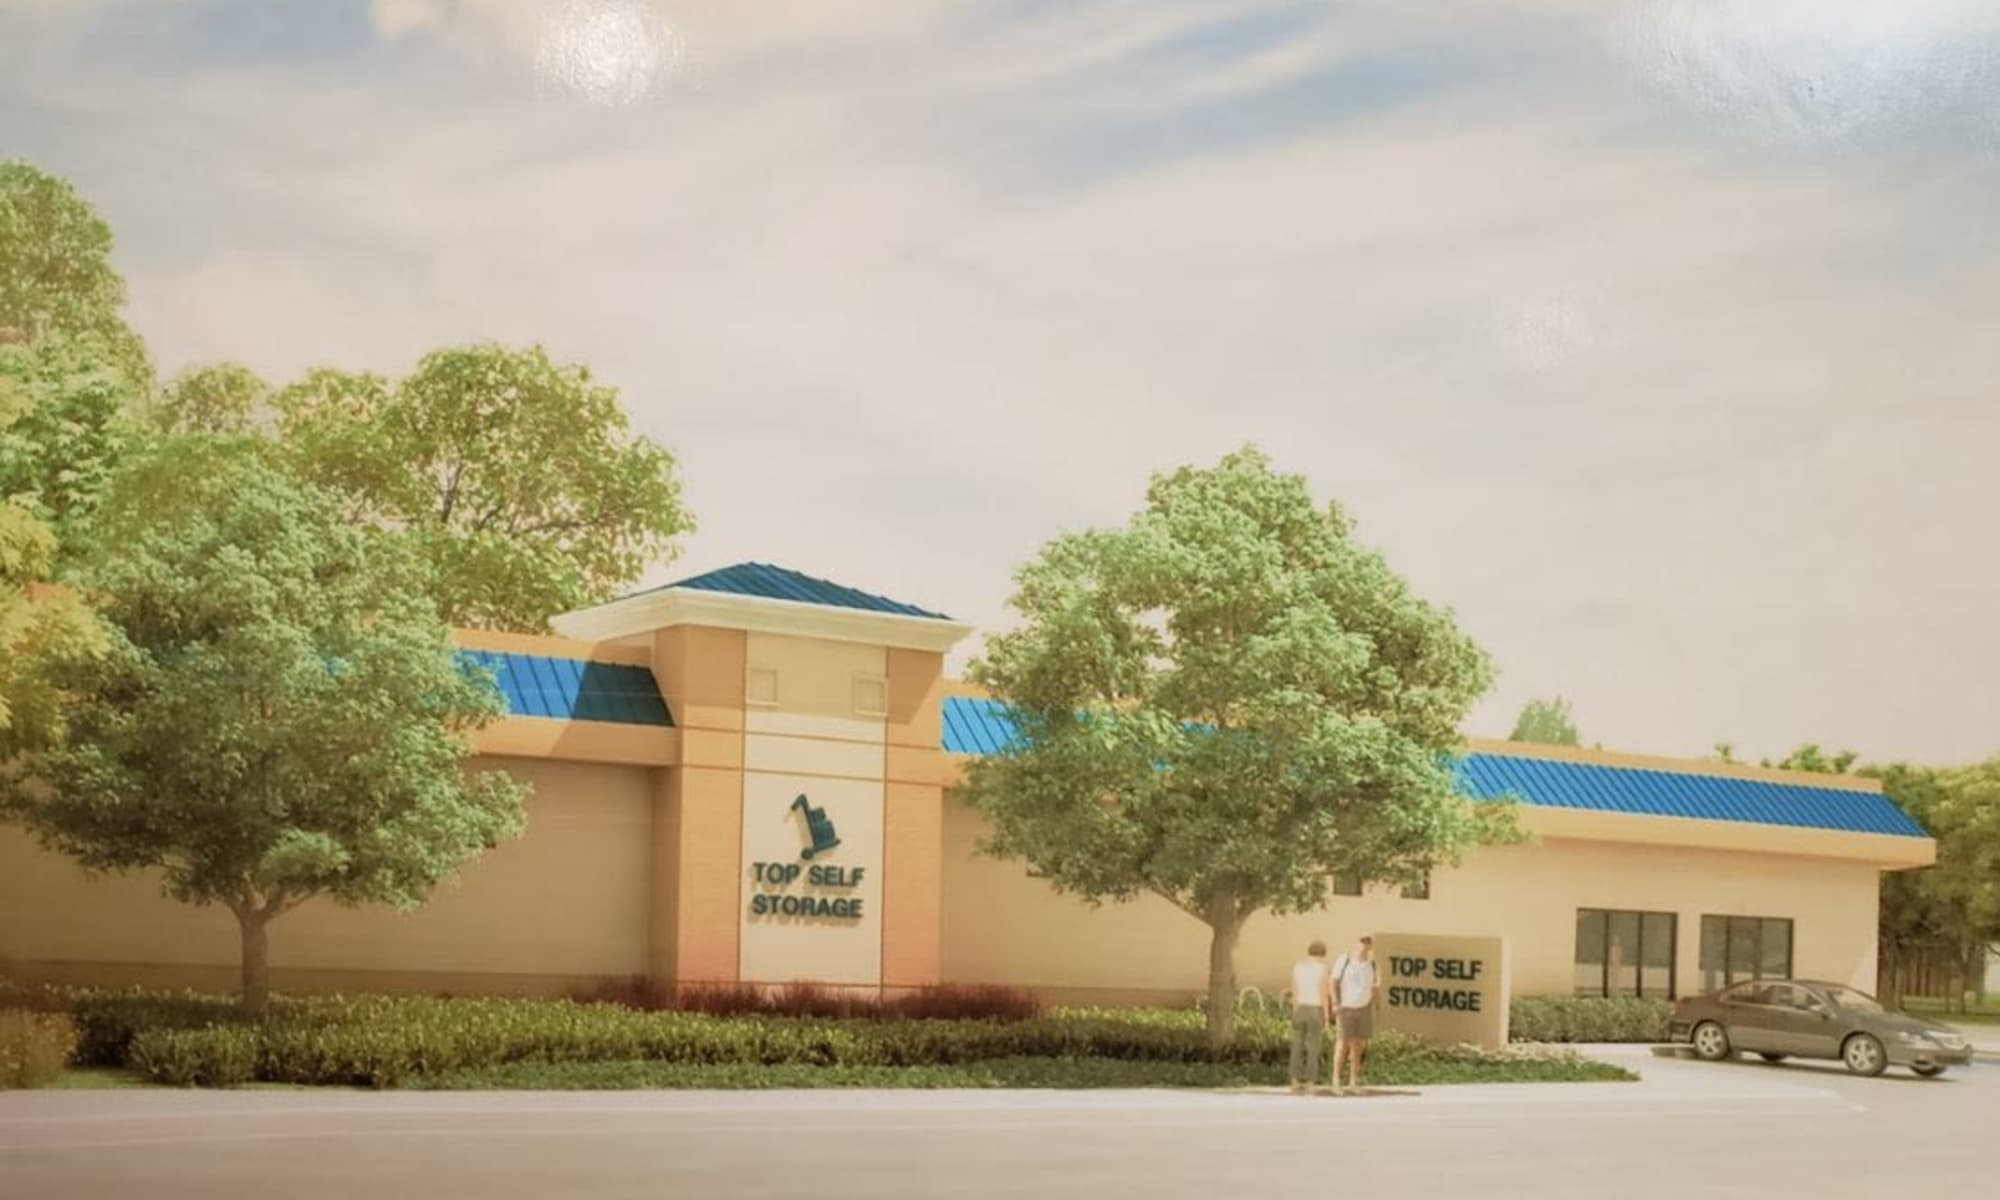 Rendering of the exterior of West Palm Beach, Florida near Top Self Storage